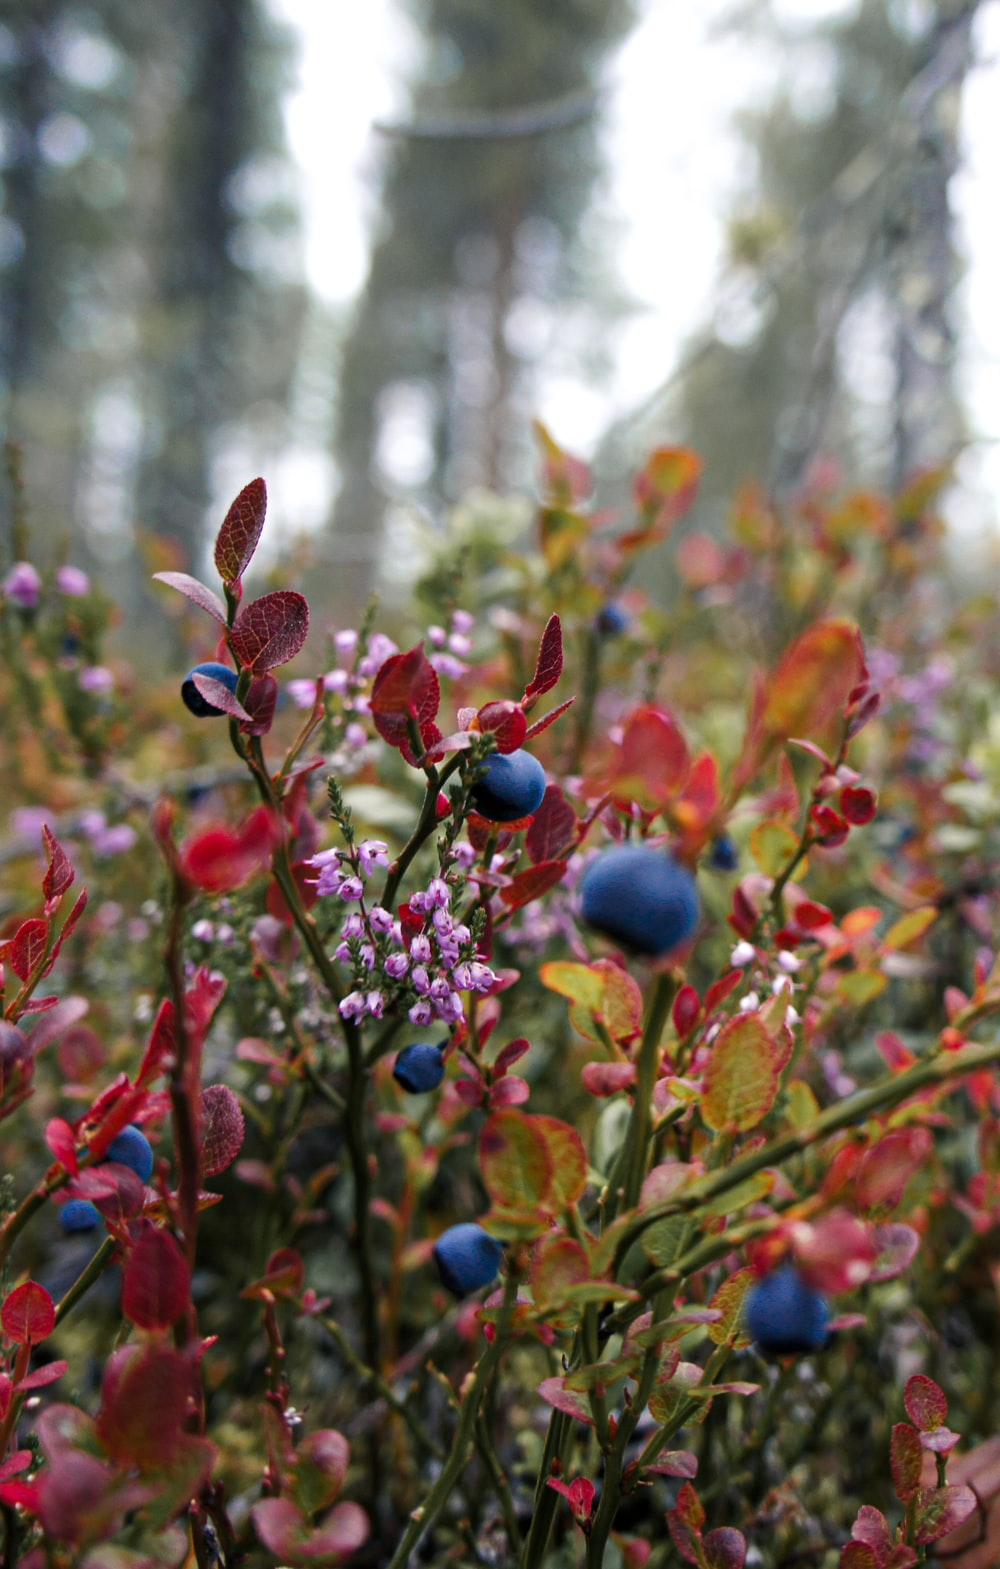 blue and red flower buds in tilt shift lens